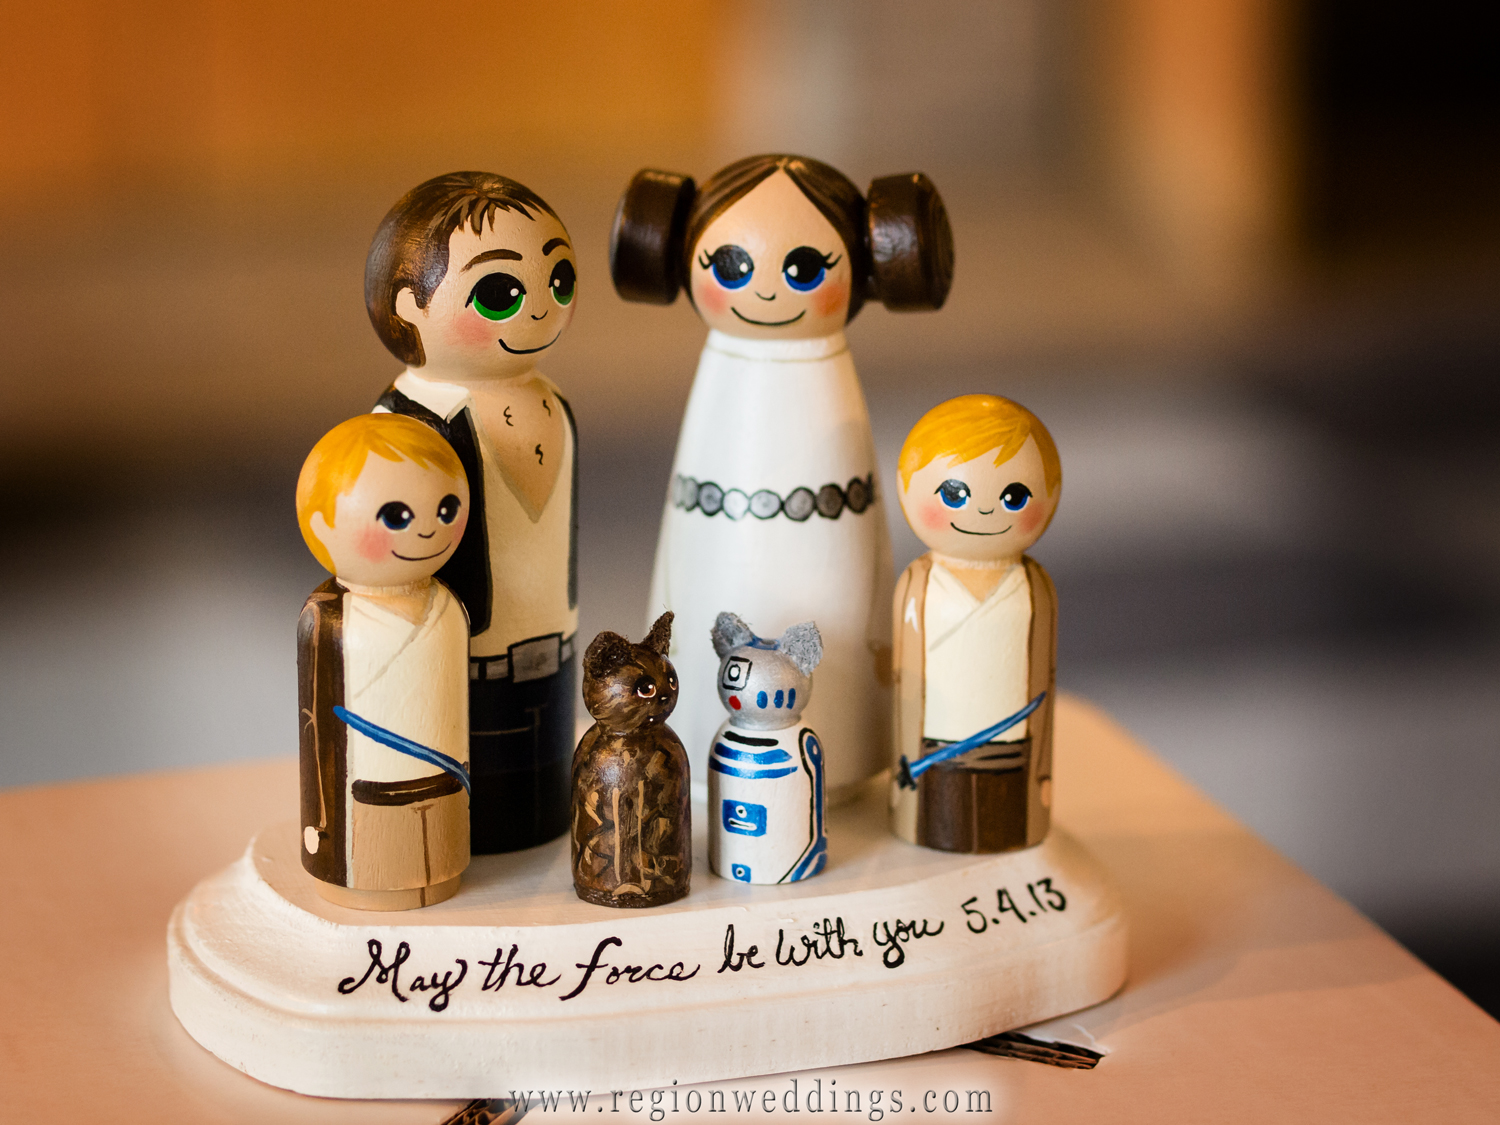 Star Wars wedding decorations on display at Casa Maria Banquet Hall in Dyer, Indiana.